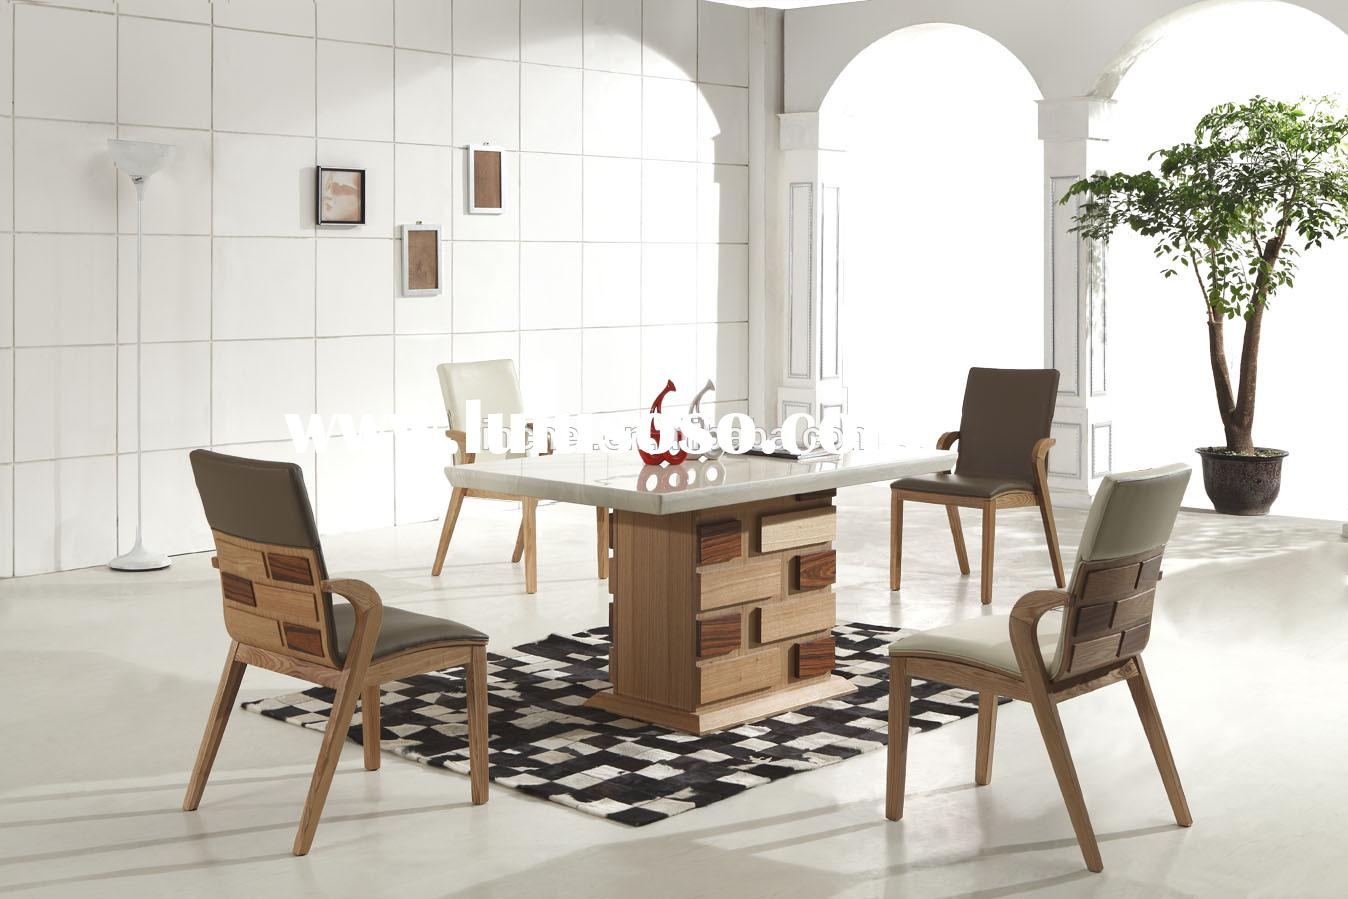 marble top dining set,dining room furniture,solid wood dining table chair LY01